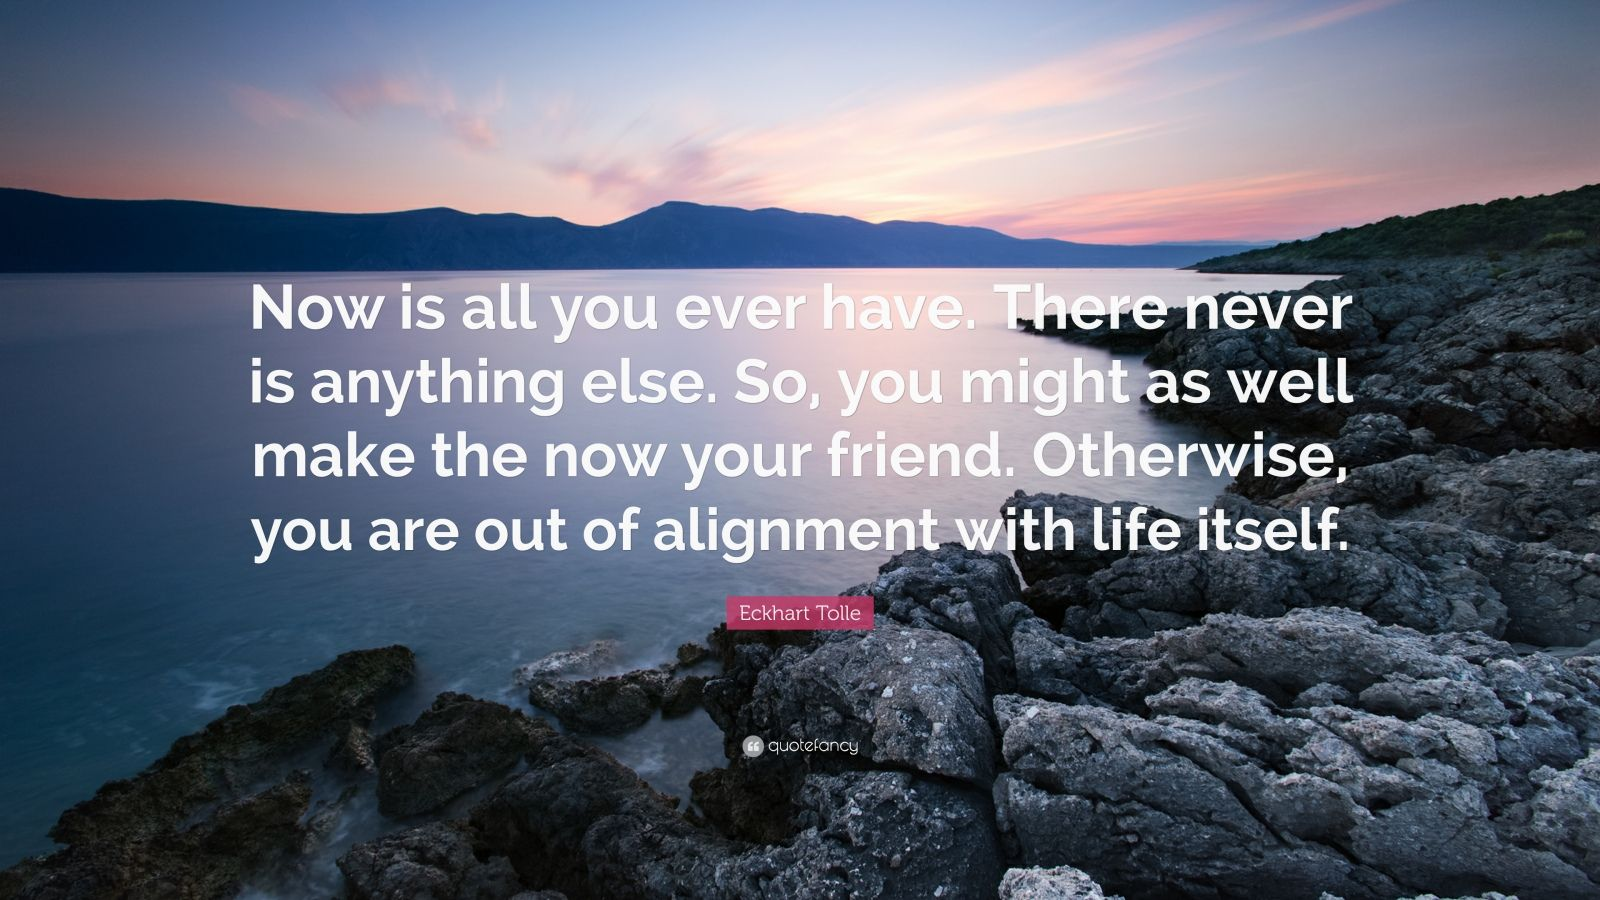 "Eckhart Tolle Quote: ""Now is all you ever have. There never is anything else. So, you might as well make the now your friend. Otherwise, you are out of alignment with life itself."""